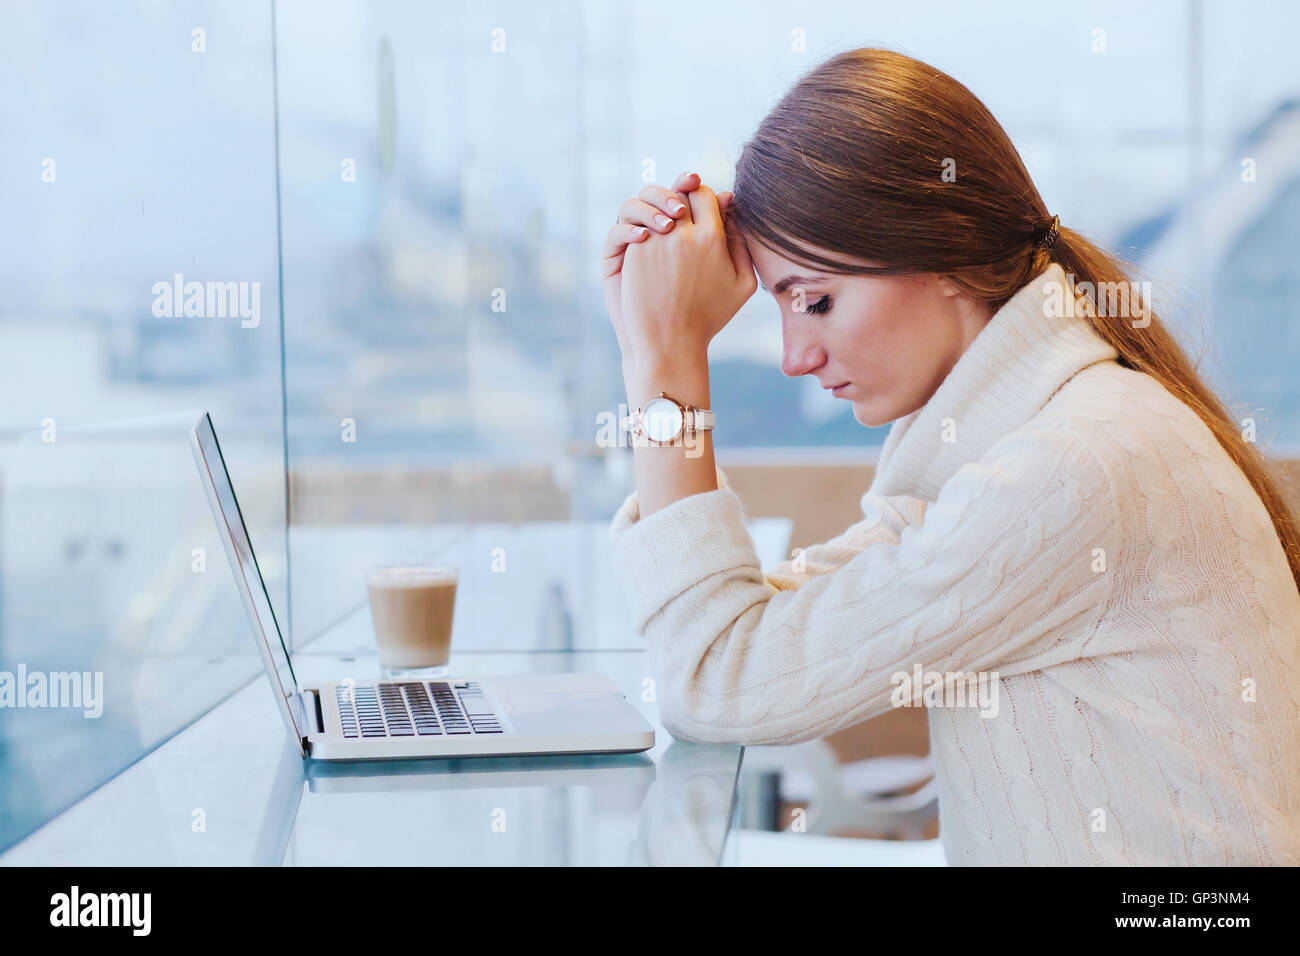 information overload, stress concept, sad desperate woman in front of computer - Stock Image